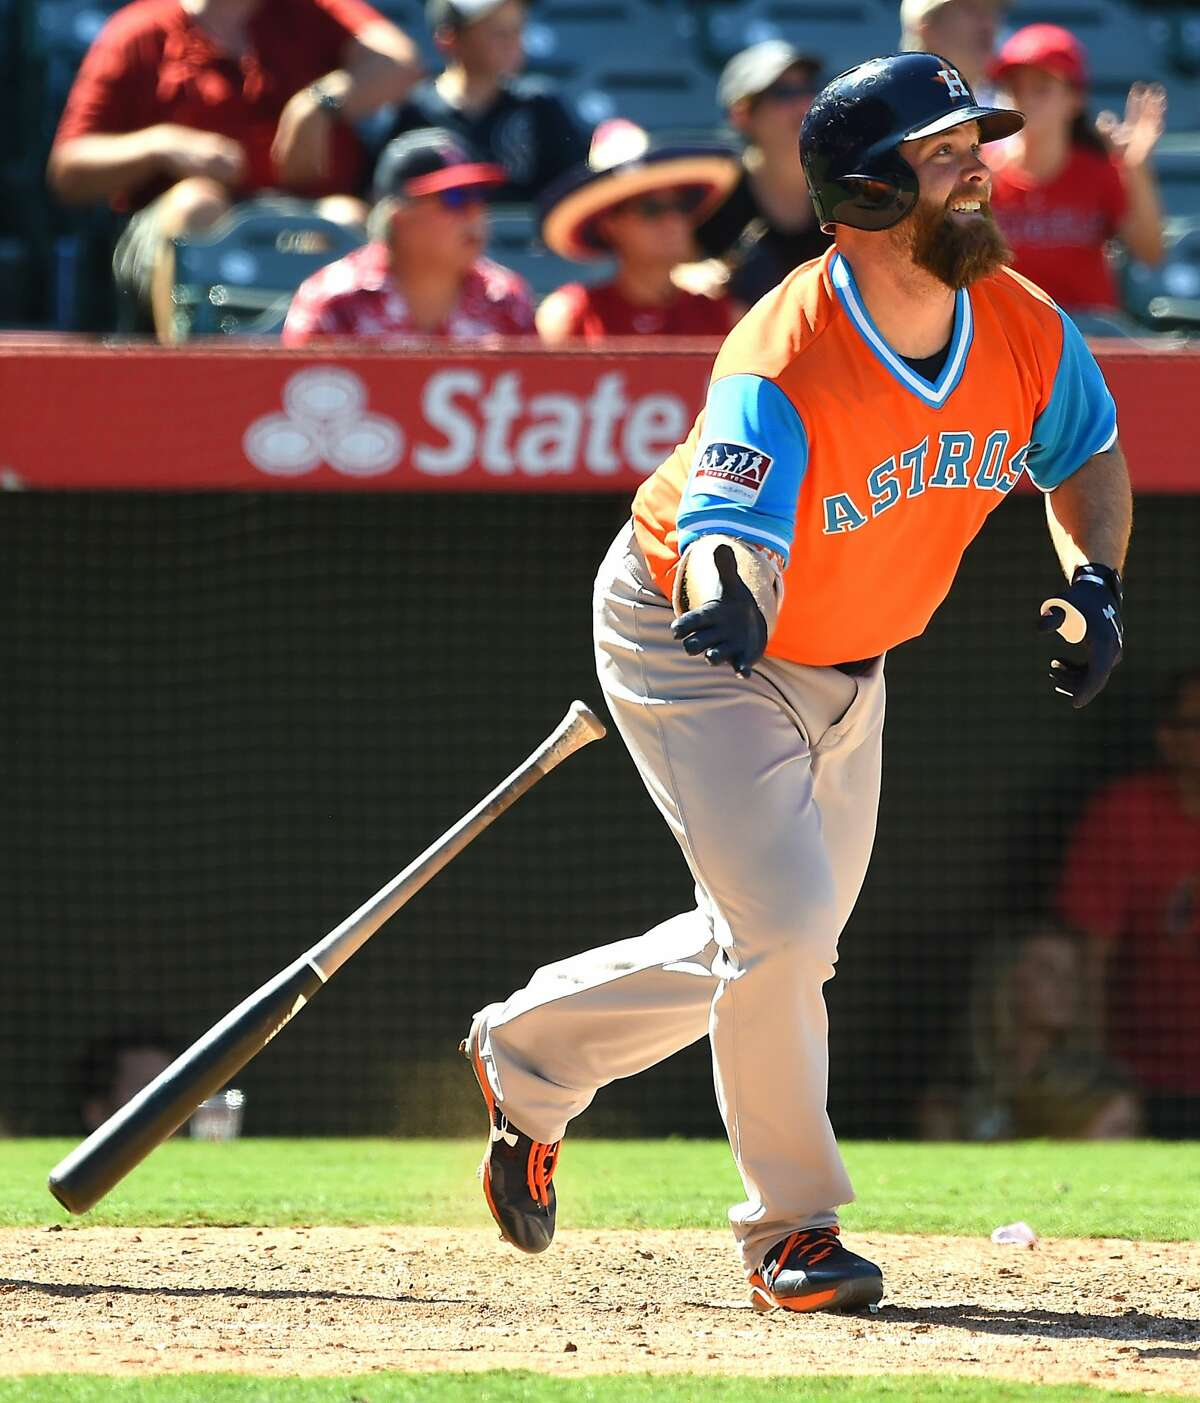 ANAHEIM, CA - AUGUST 27: Brian McCann #16 of the Houston Astros smiles as he runs to first after hitting a three RBI triple in the eighth inning of the game against the Los Angeles Angels of Anaheim on August 27, 2017 in Anaheim, California. (Photo by Jayne Kamin-Oncea/Getty Images)